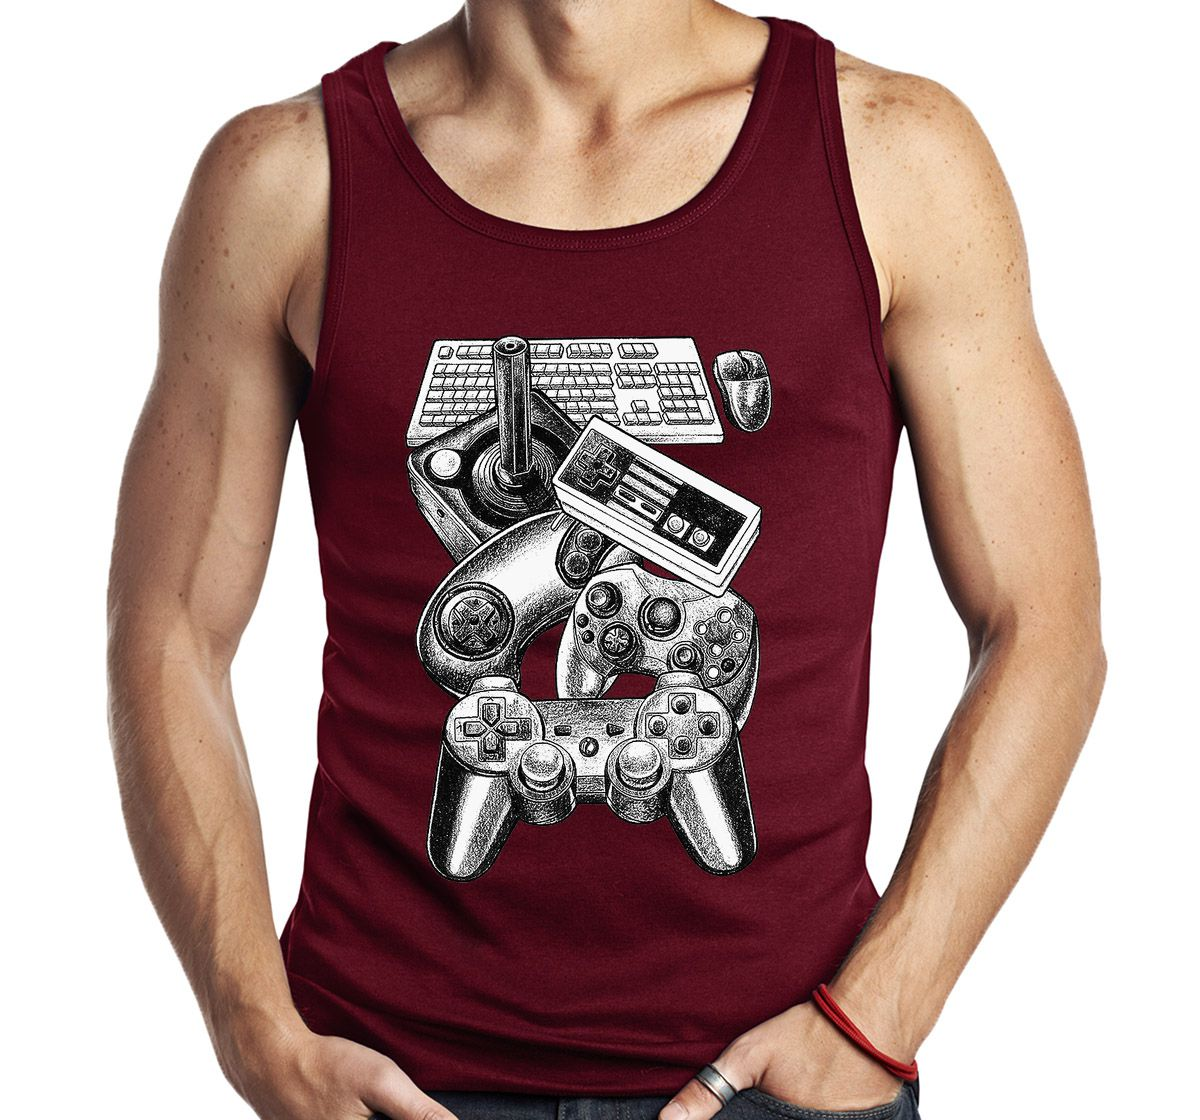 Camiseta Regata Controles Video Game Gamer Geek Sem Manga  - Dragon Store